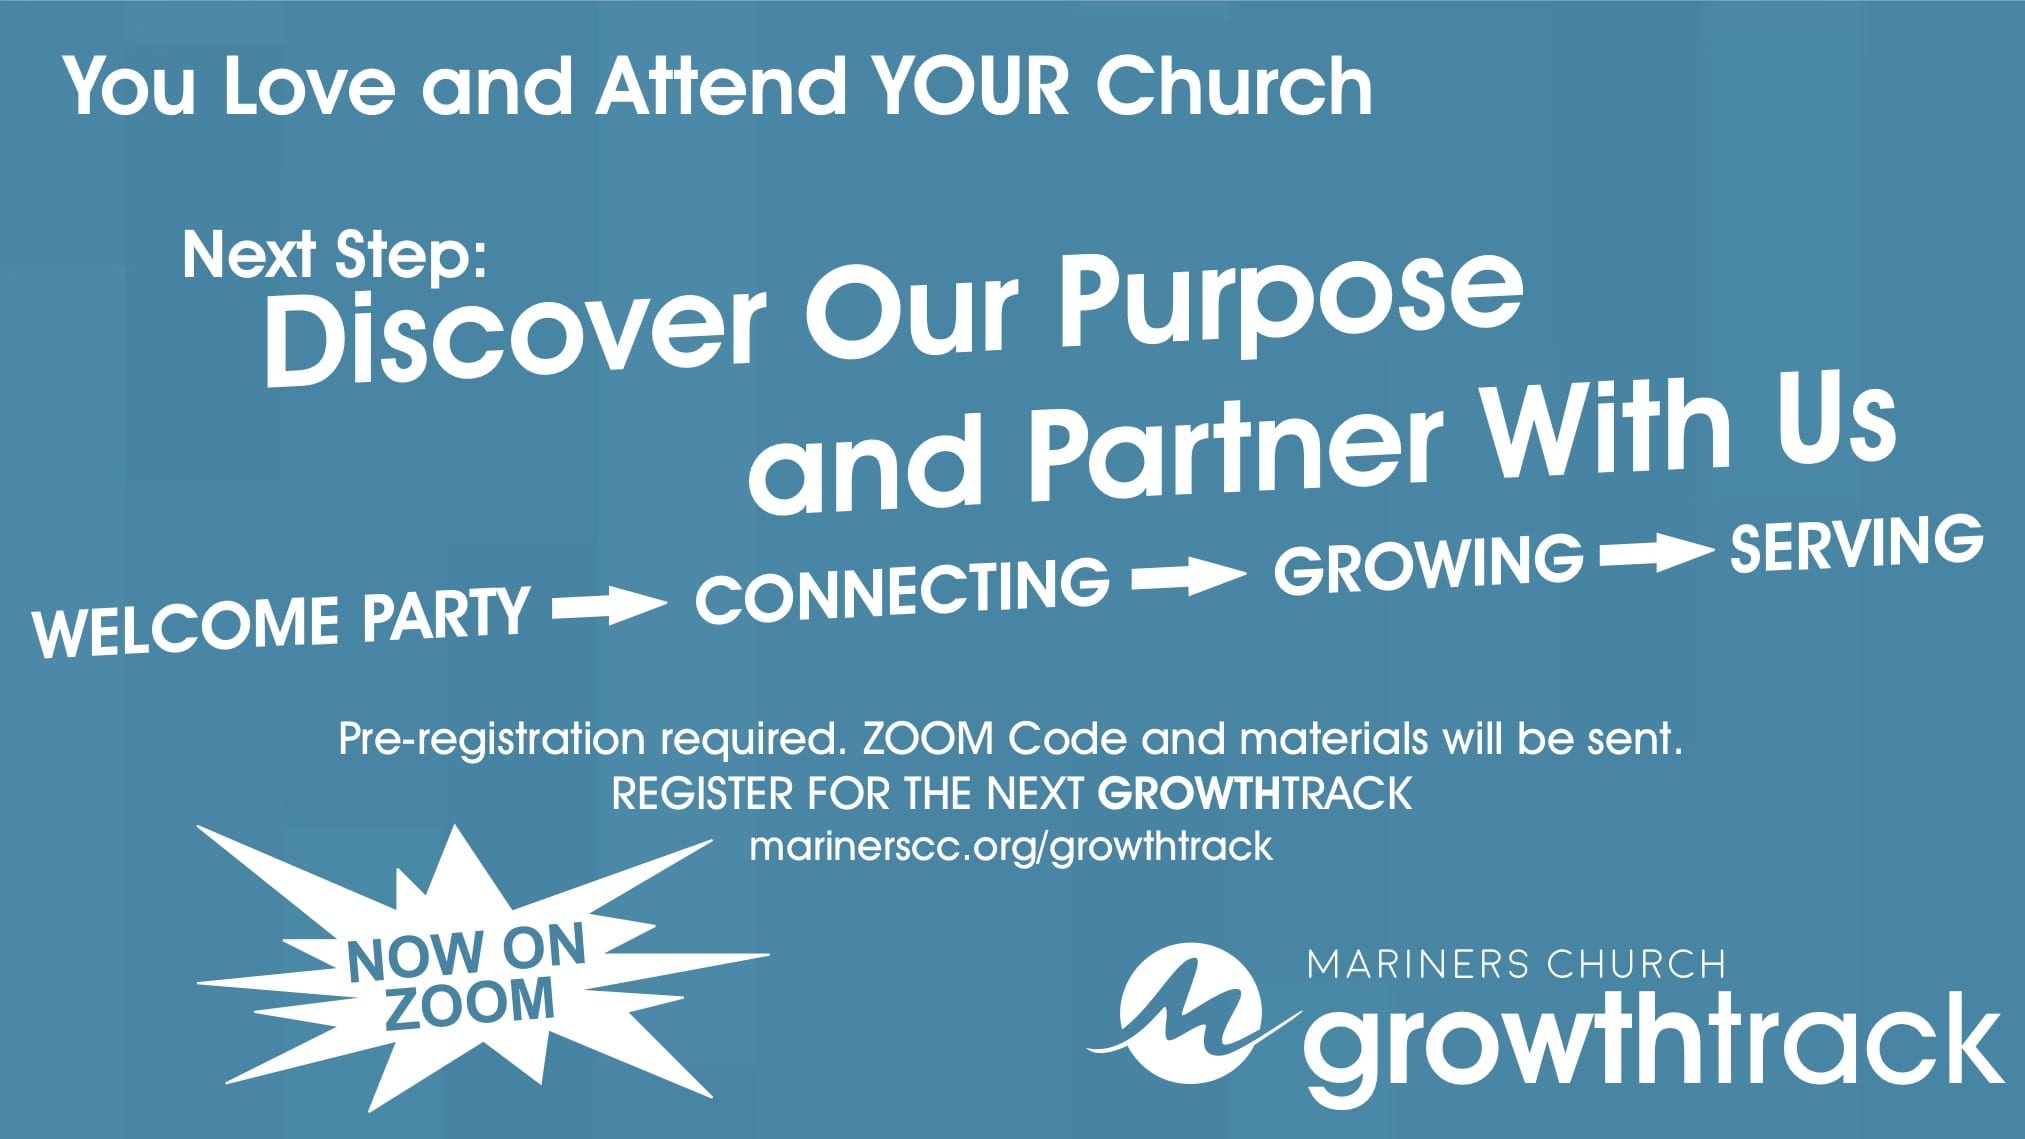 GrowthTrack, Your Next Step to Discover and Partner With YOUR Church